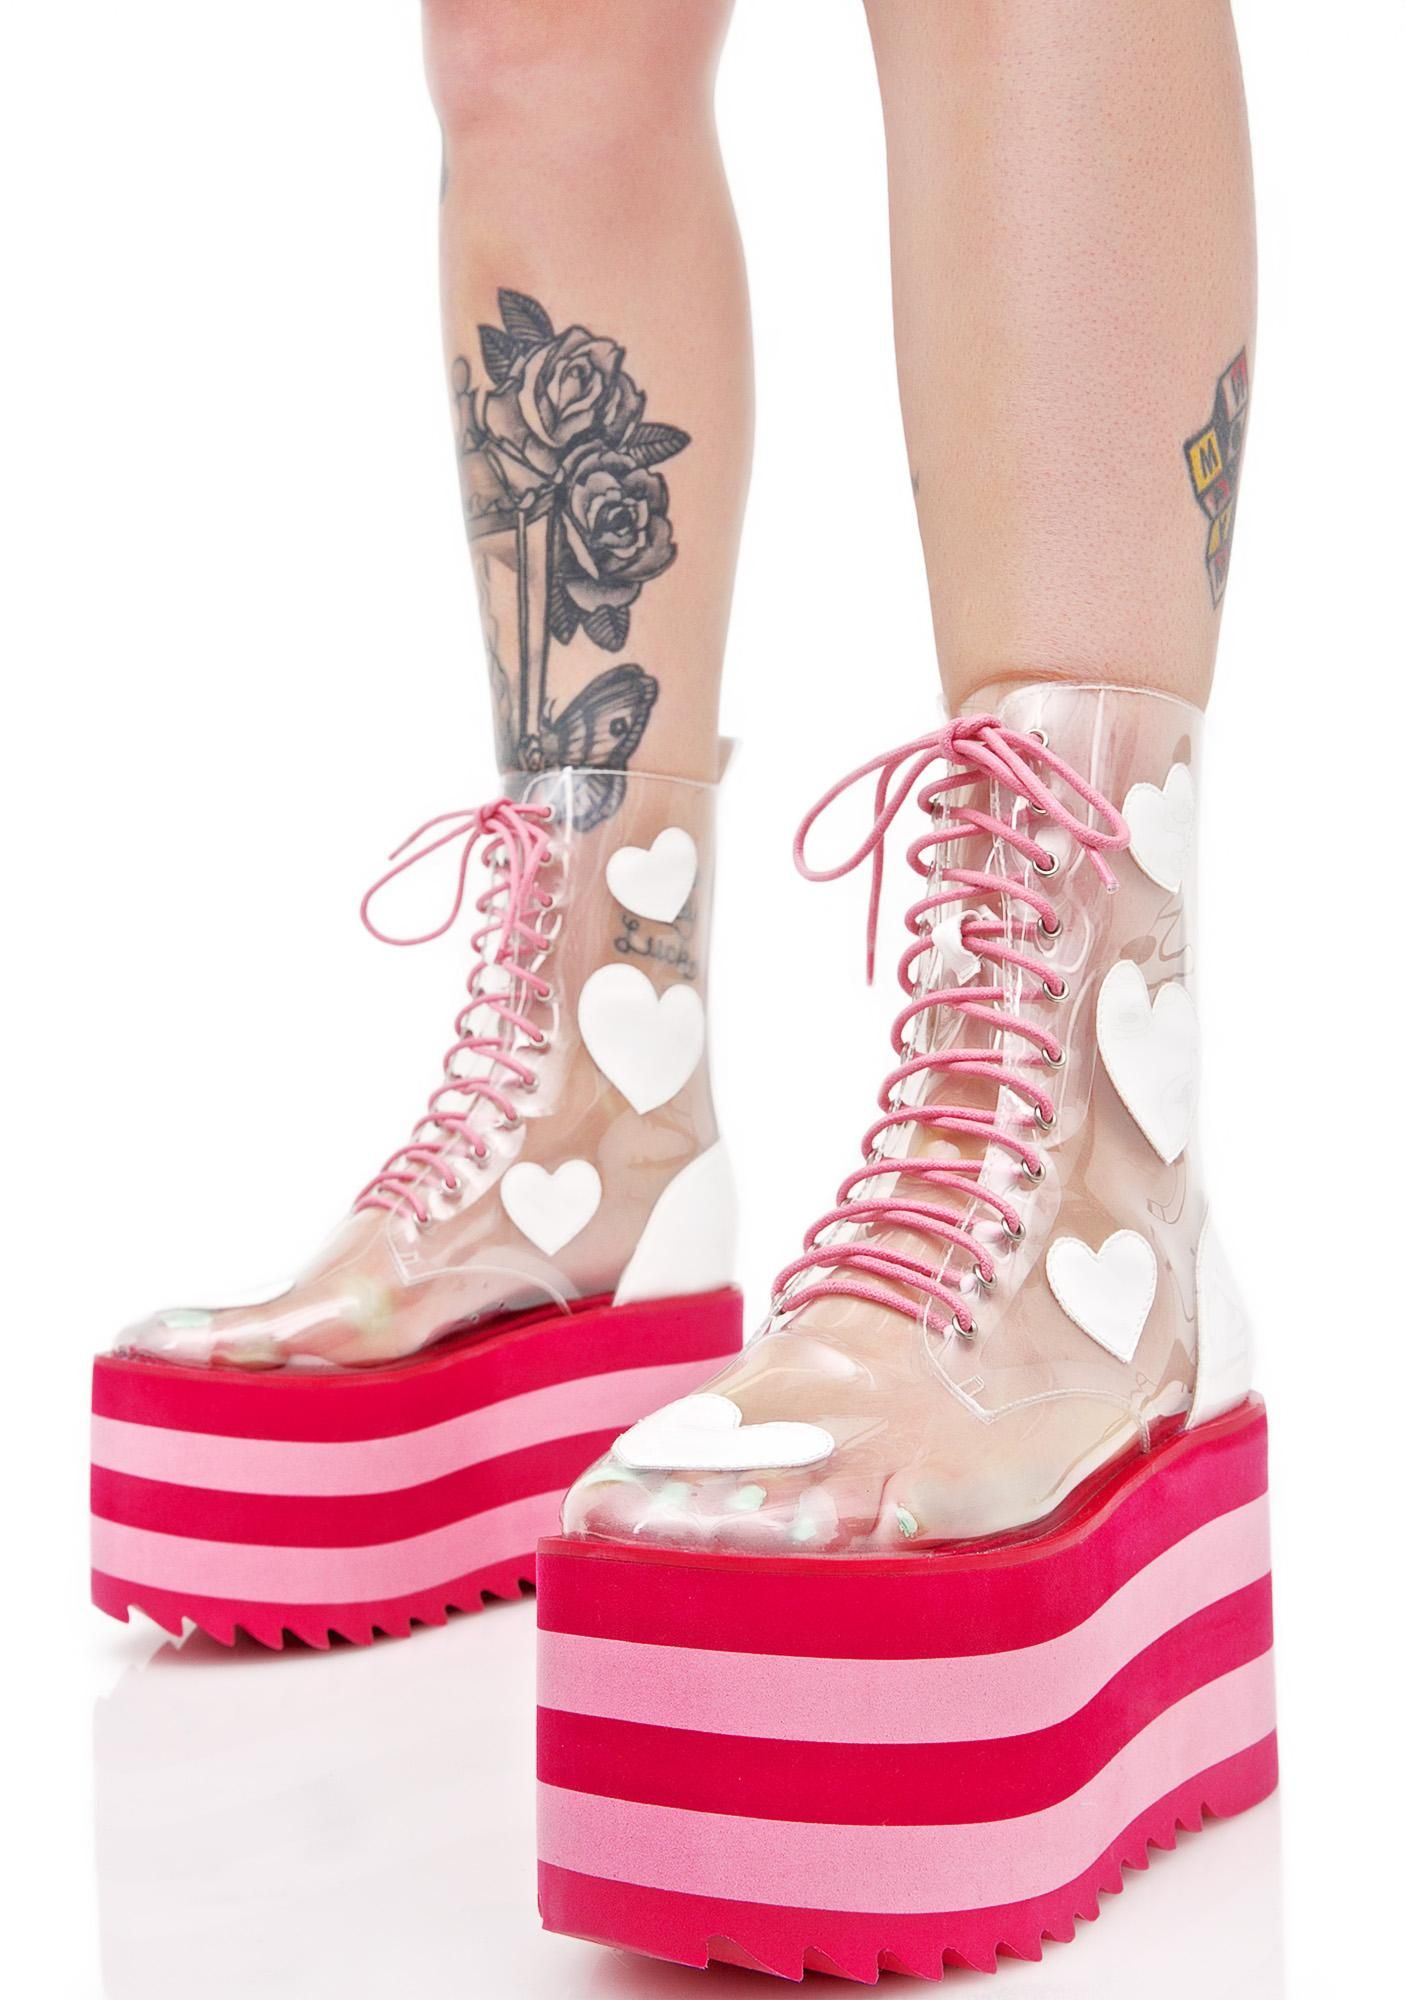 3d4243ec6b6 Design + Product Development + Production for Dolls Kill -- Sugarbaby Lovesick  Boots